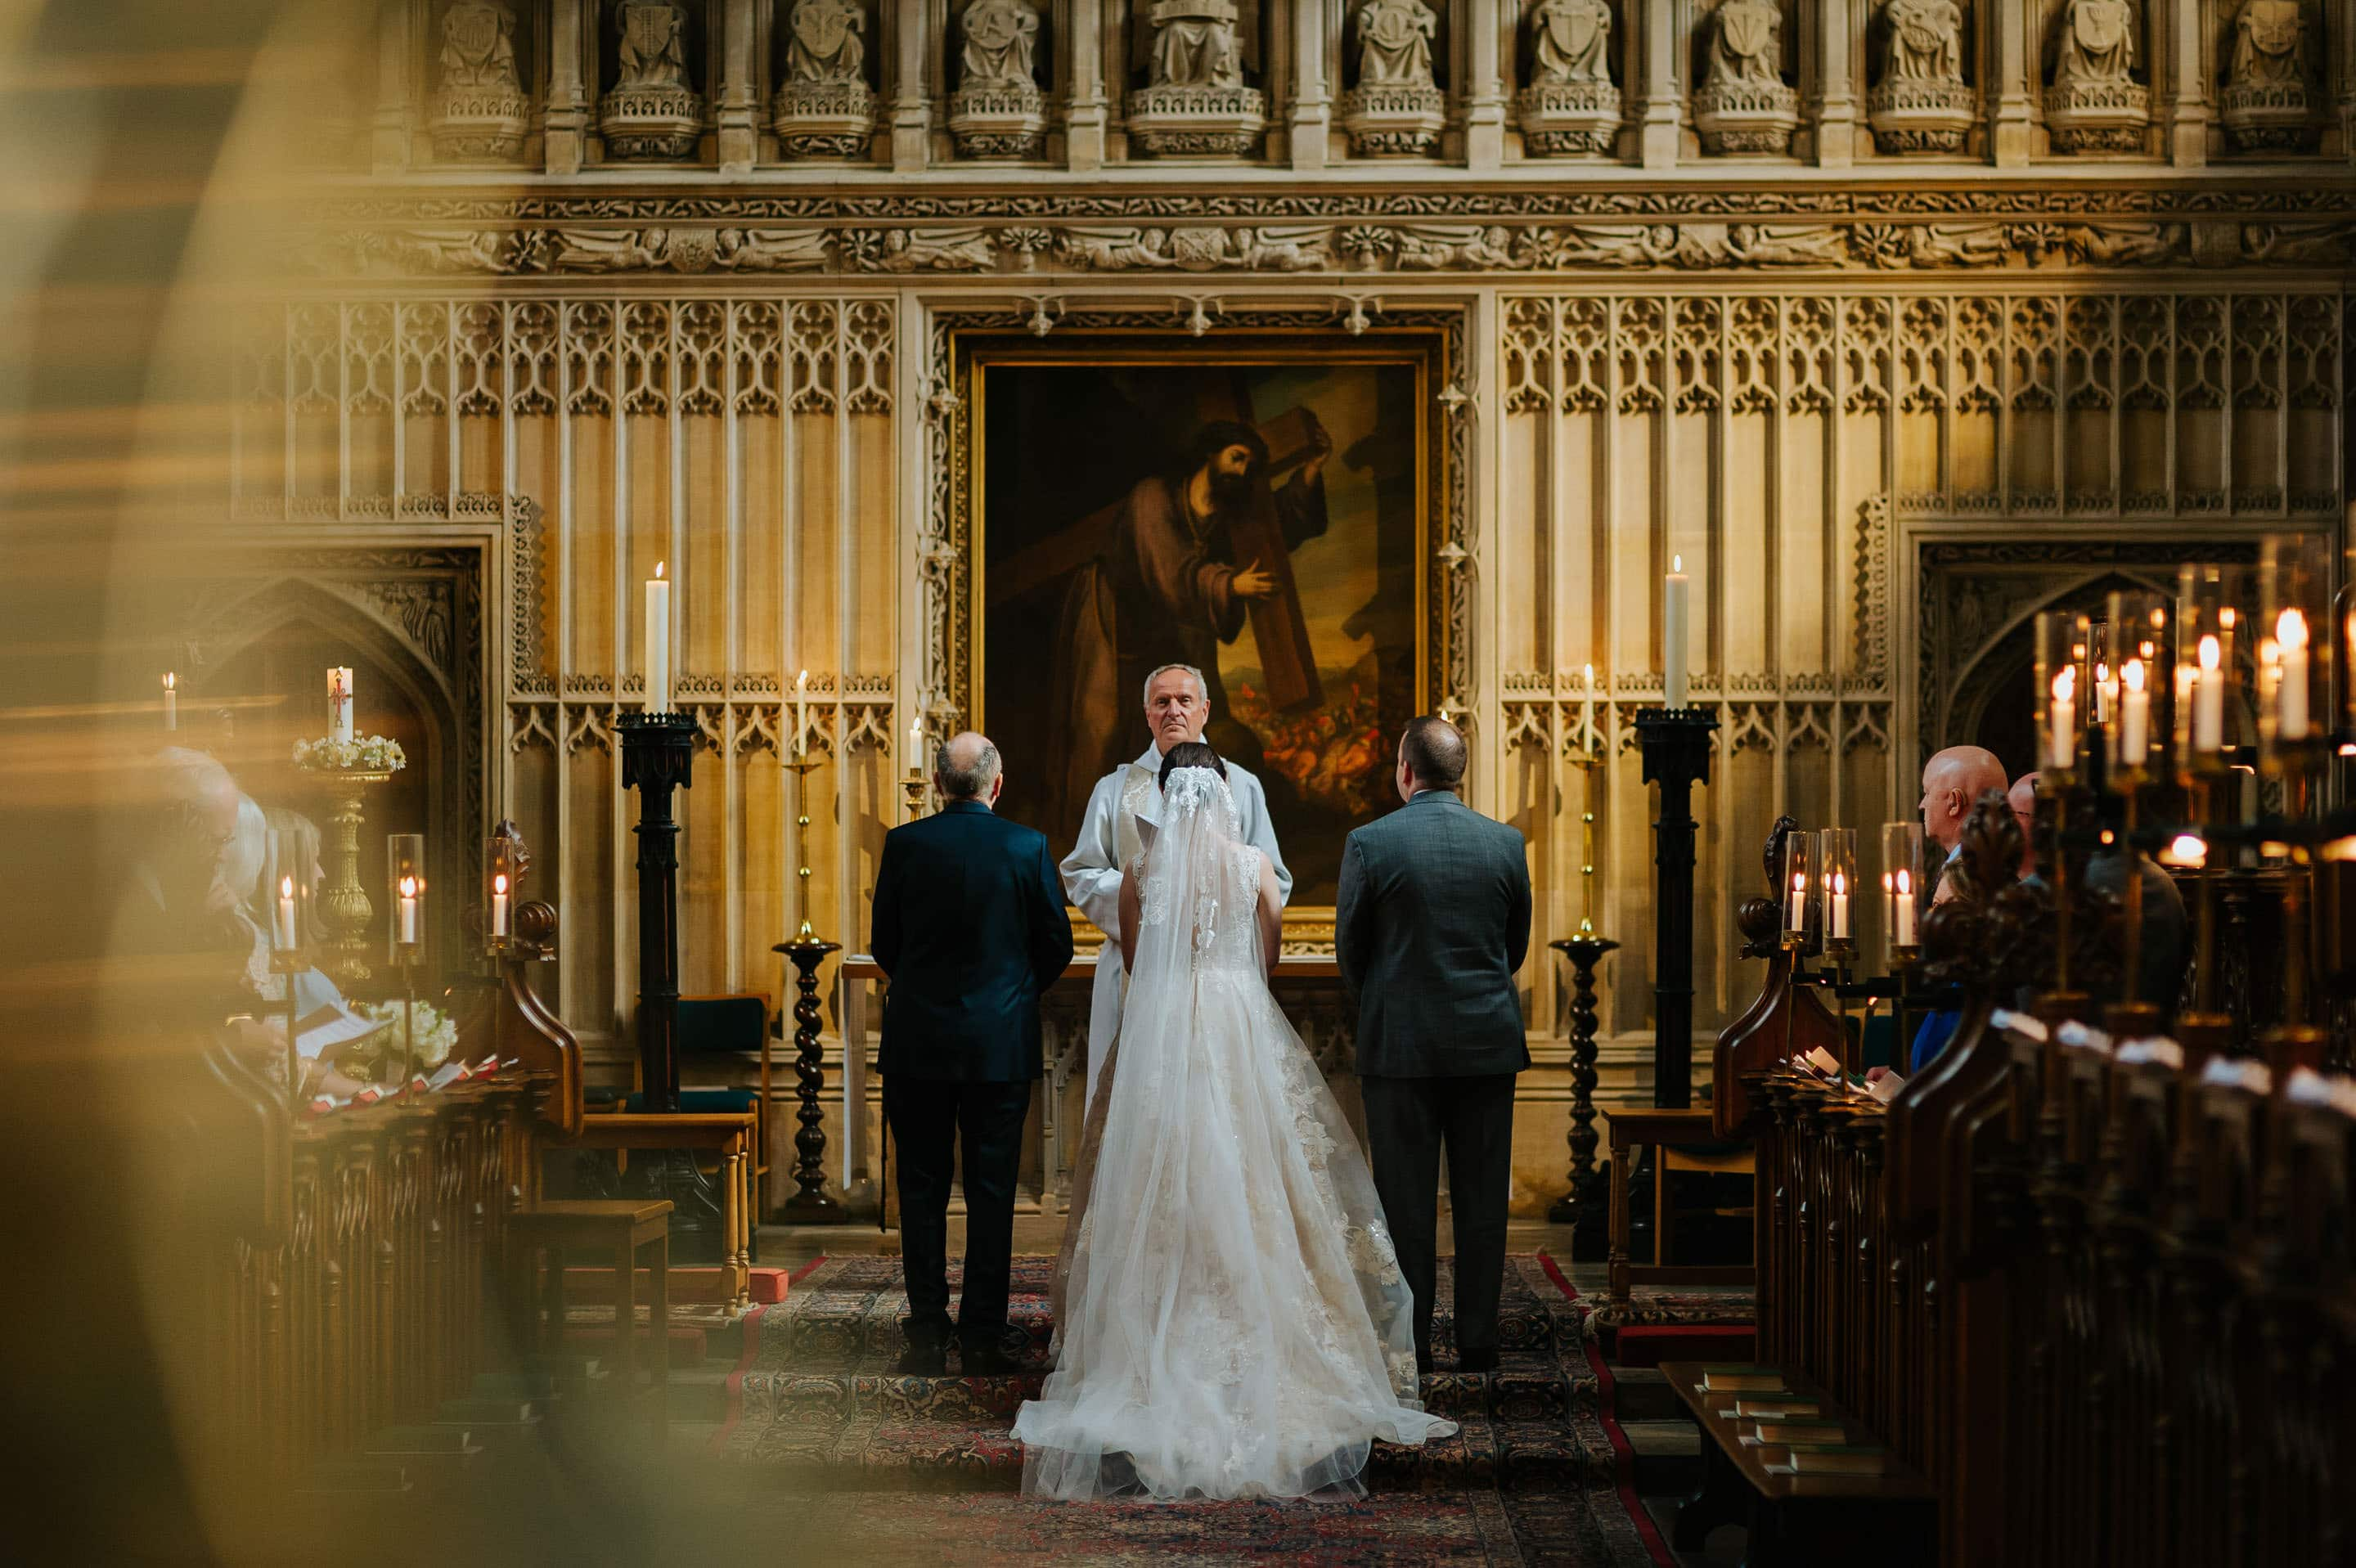 wedding at magdalen college in oxford 25 - Tommie + Virginia | Wedding at Magdalen College in Oxford